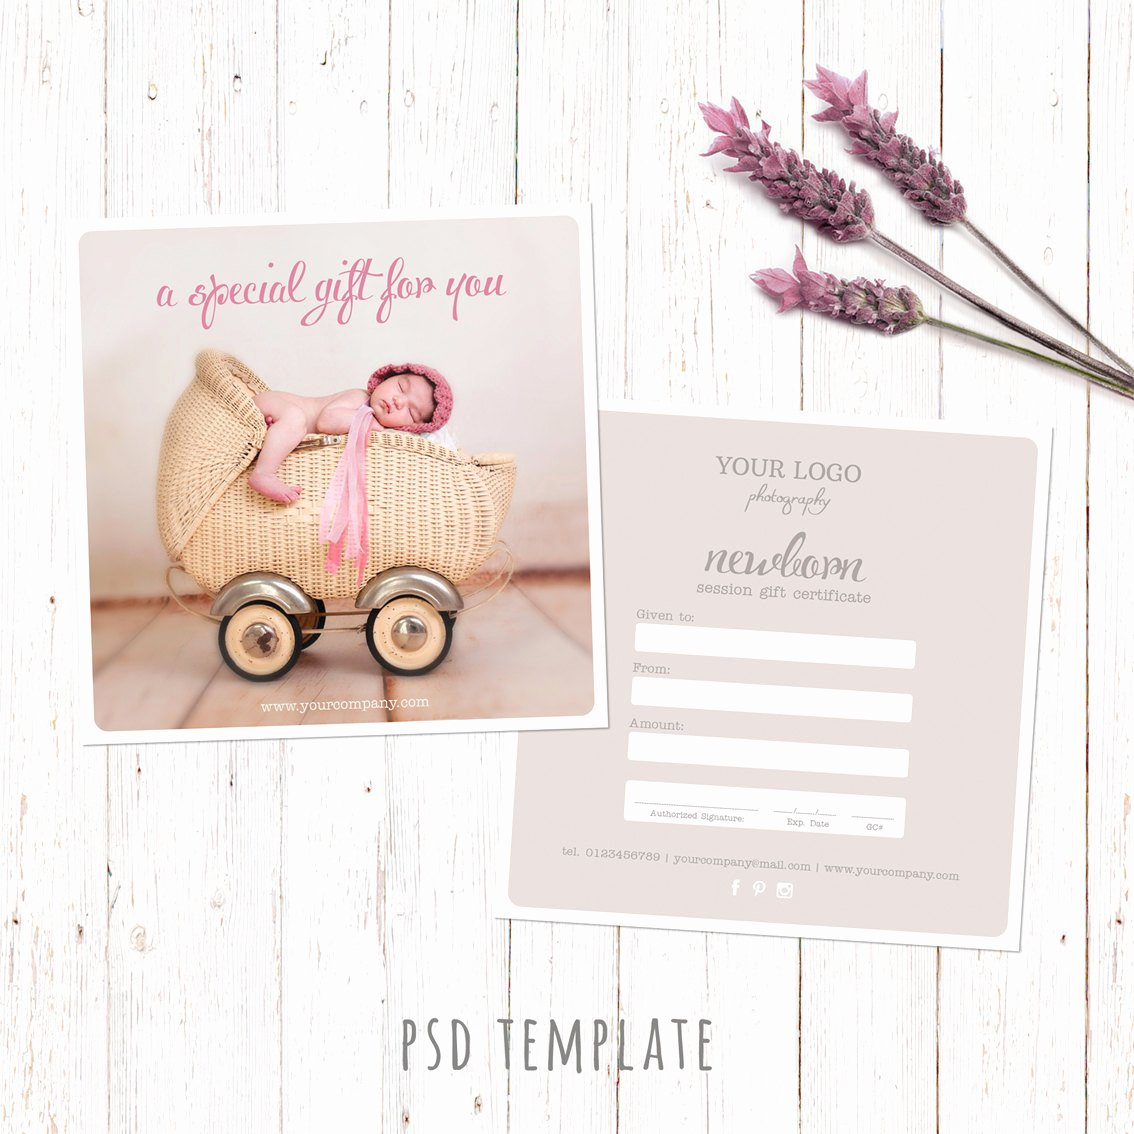 Photographer Gift Certificate Template Unique Gift Certificate Template Newborn Session Photography T